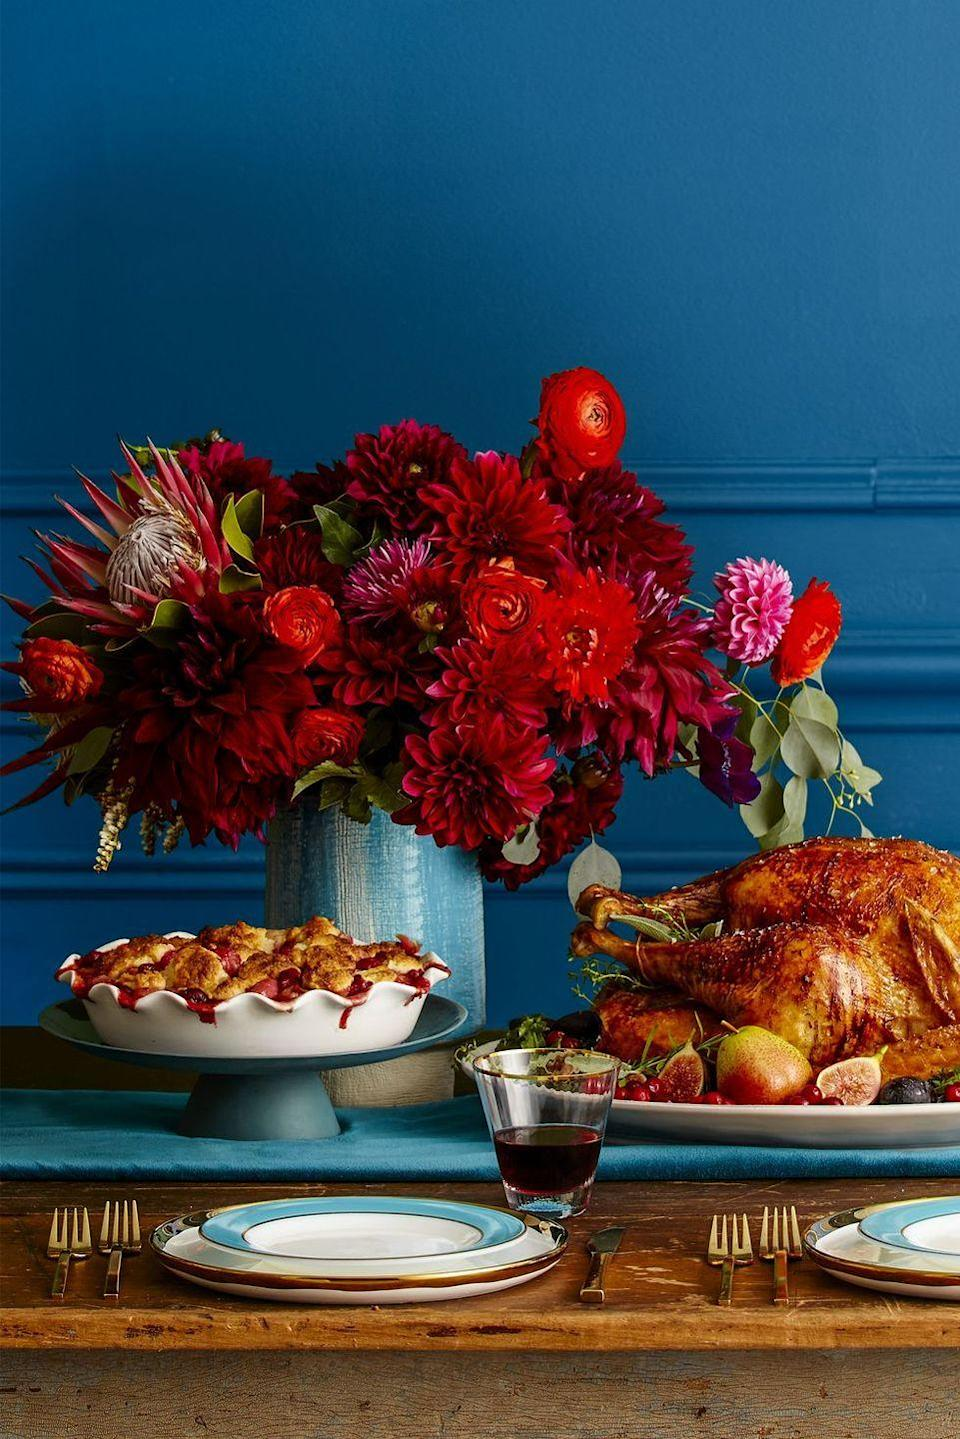 """<p>A vibrant arrangement is a guaranteed head-turner at any dinner party, but it'll be especially appreciated on Thanksgiving Day. Dahlias, roses, and ranunculus will fit right in with all the red-hued pies and cranberry sauce on your table.</p><p><a class=""""link rapid-noclick-resp"""" href=""""https://www.amazon.com/Artificial-Flowers-Red-Plants/s?rh=n%3A14087331%2Cp_n_feature_twenty_browse-bin%3A3254103011&tag=syn-yahoo-20&ascsubtag=%5Bartid%7C10050.g.2130%5Bsrc%7Cyahoo-us"""" rel=""""nofollow noopener"""" target=""""_blank"""" data-ylk=""""slk:SHOP RED ARTIFICIAL FLOWERS"""">SHOP RED ARTIFICIAL FLOWERS</a></p>"""